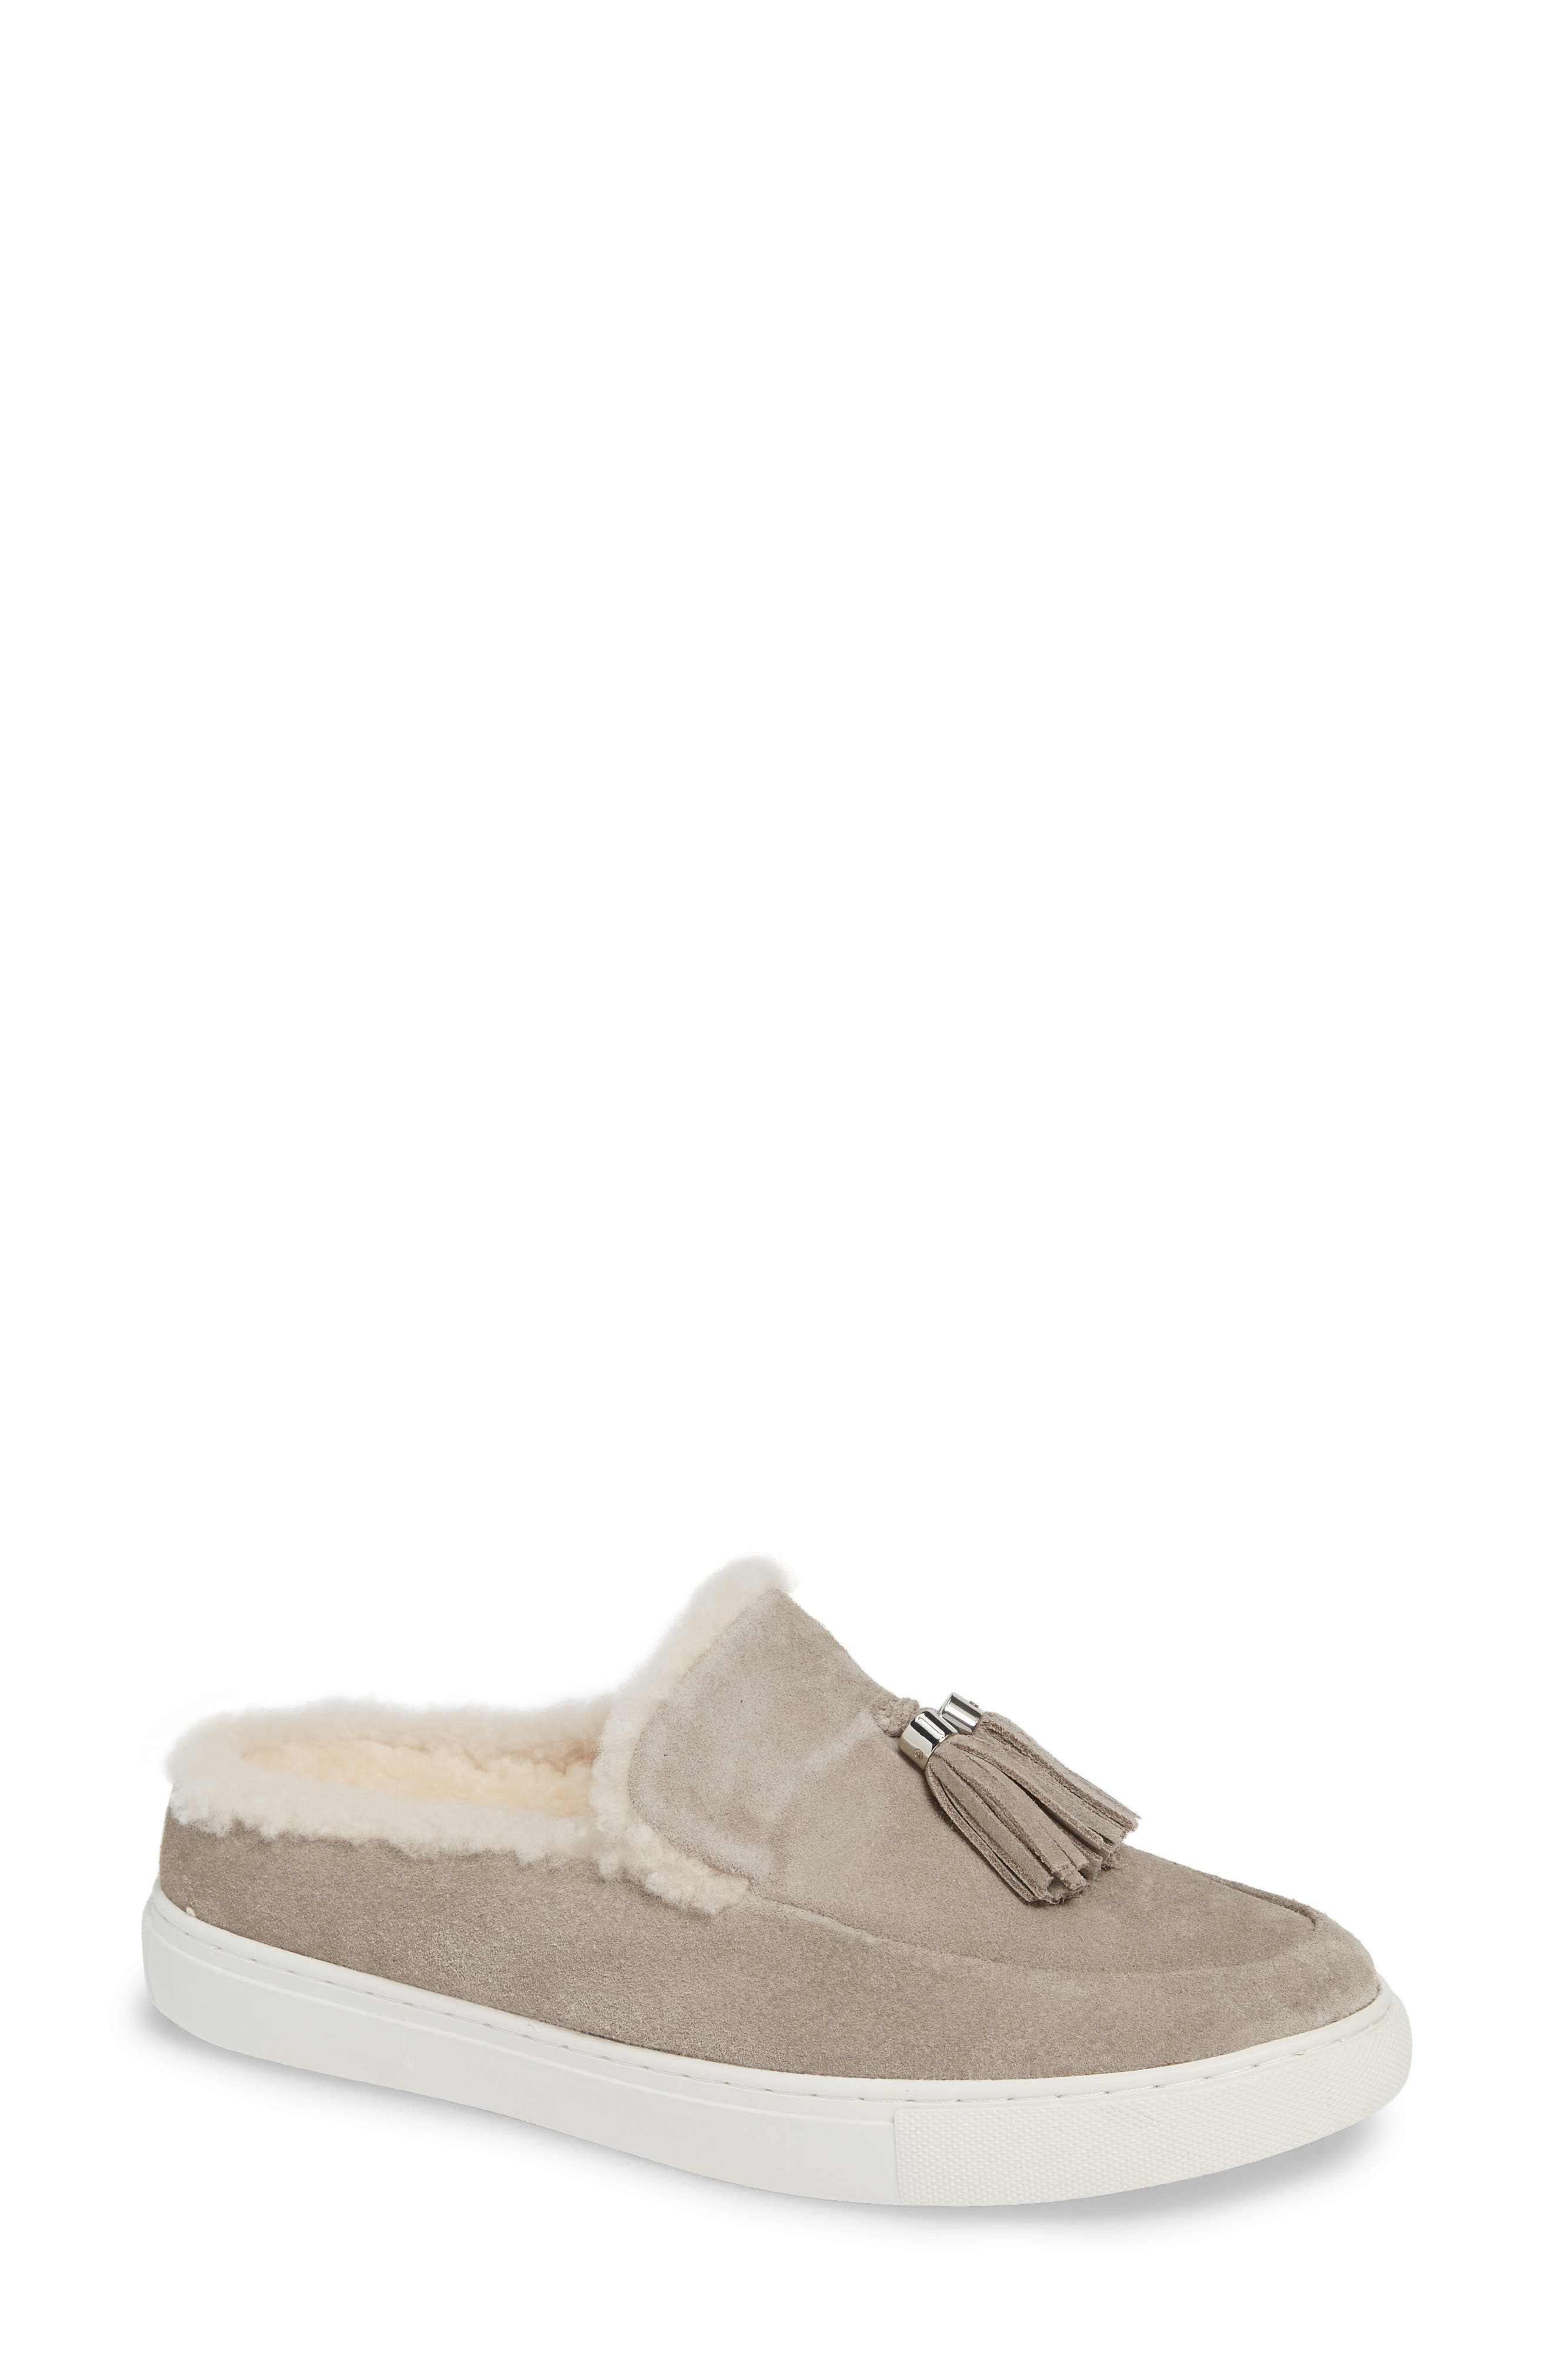 GENTLE SOULS BY KENNETH COLE Rory Loafer Mule, Main, color, STONE NUBUCK LEATHER